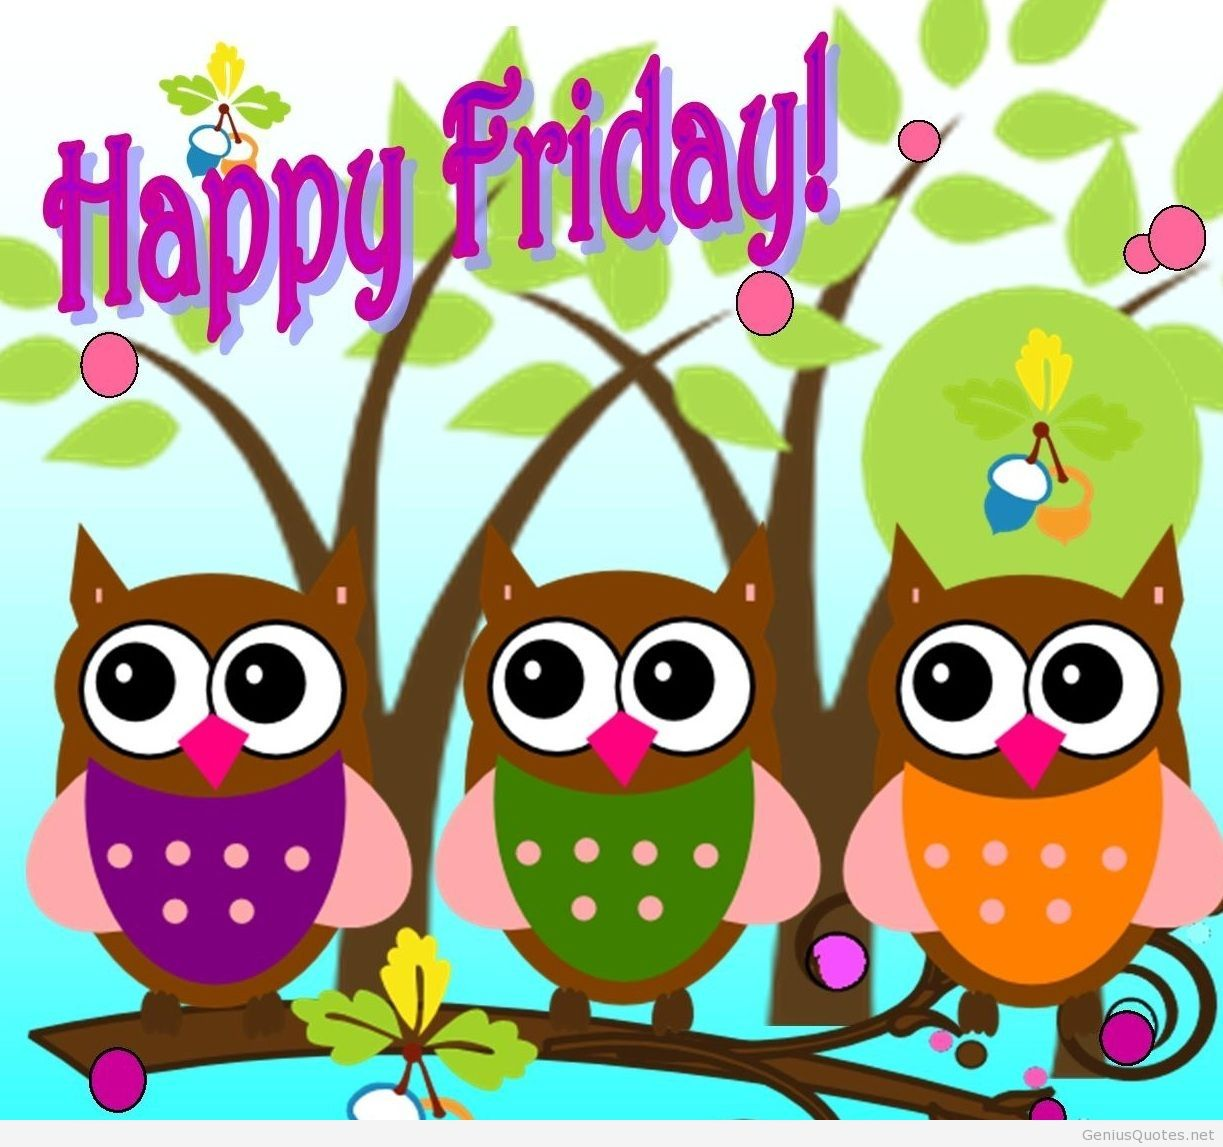 animated happy friday images - Google Search | Hello ...